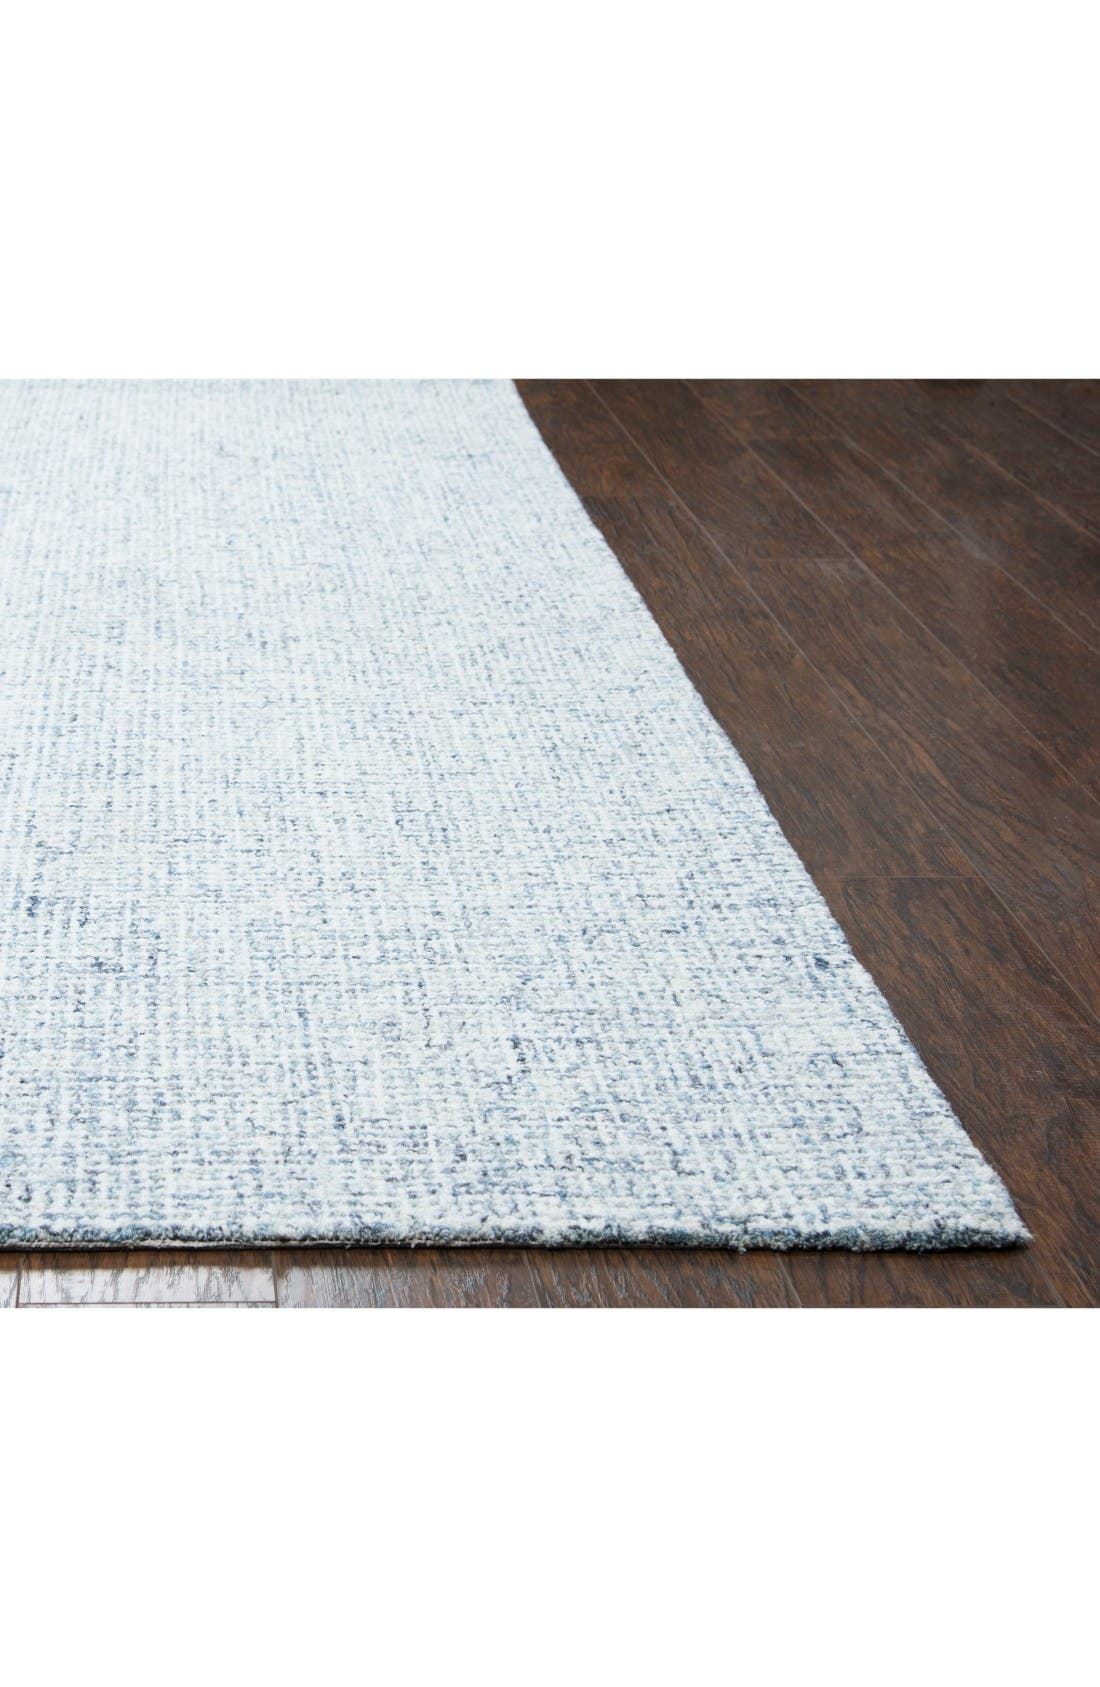 Bramble Hand Tufted Wool Area Rug,                             Alternate thumbnail 2, color,                             Blue